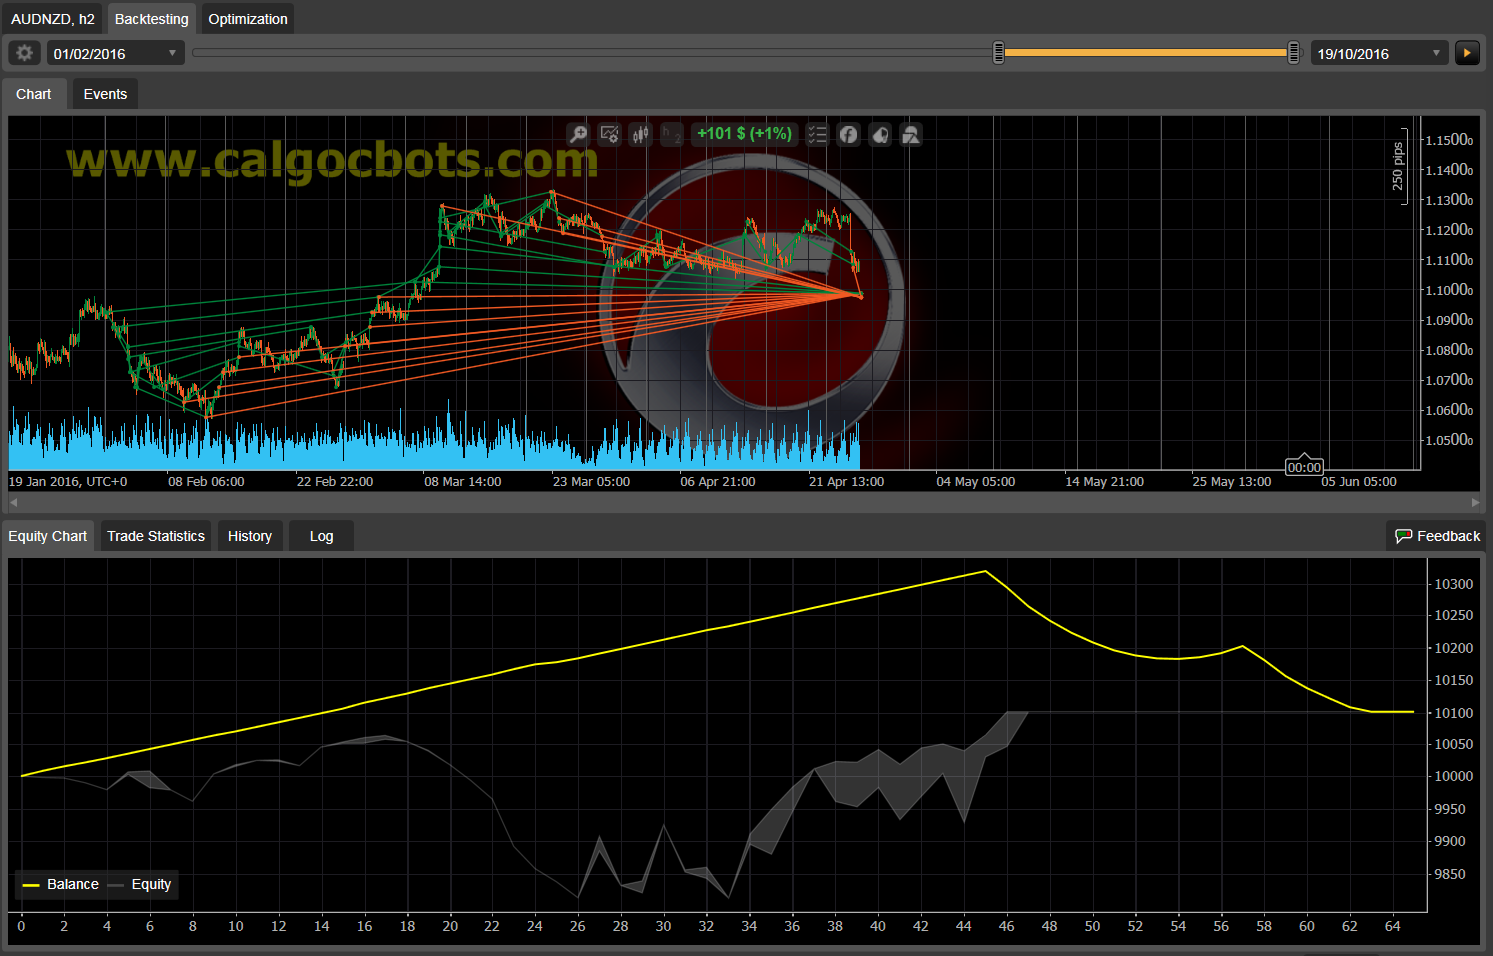 Dual Grid Hedge AUD NZD 1h cAlgo cBots cTrader 1k 100 50 100 - 07